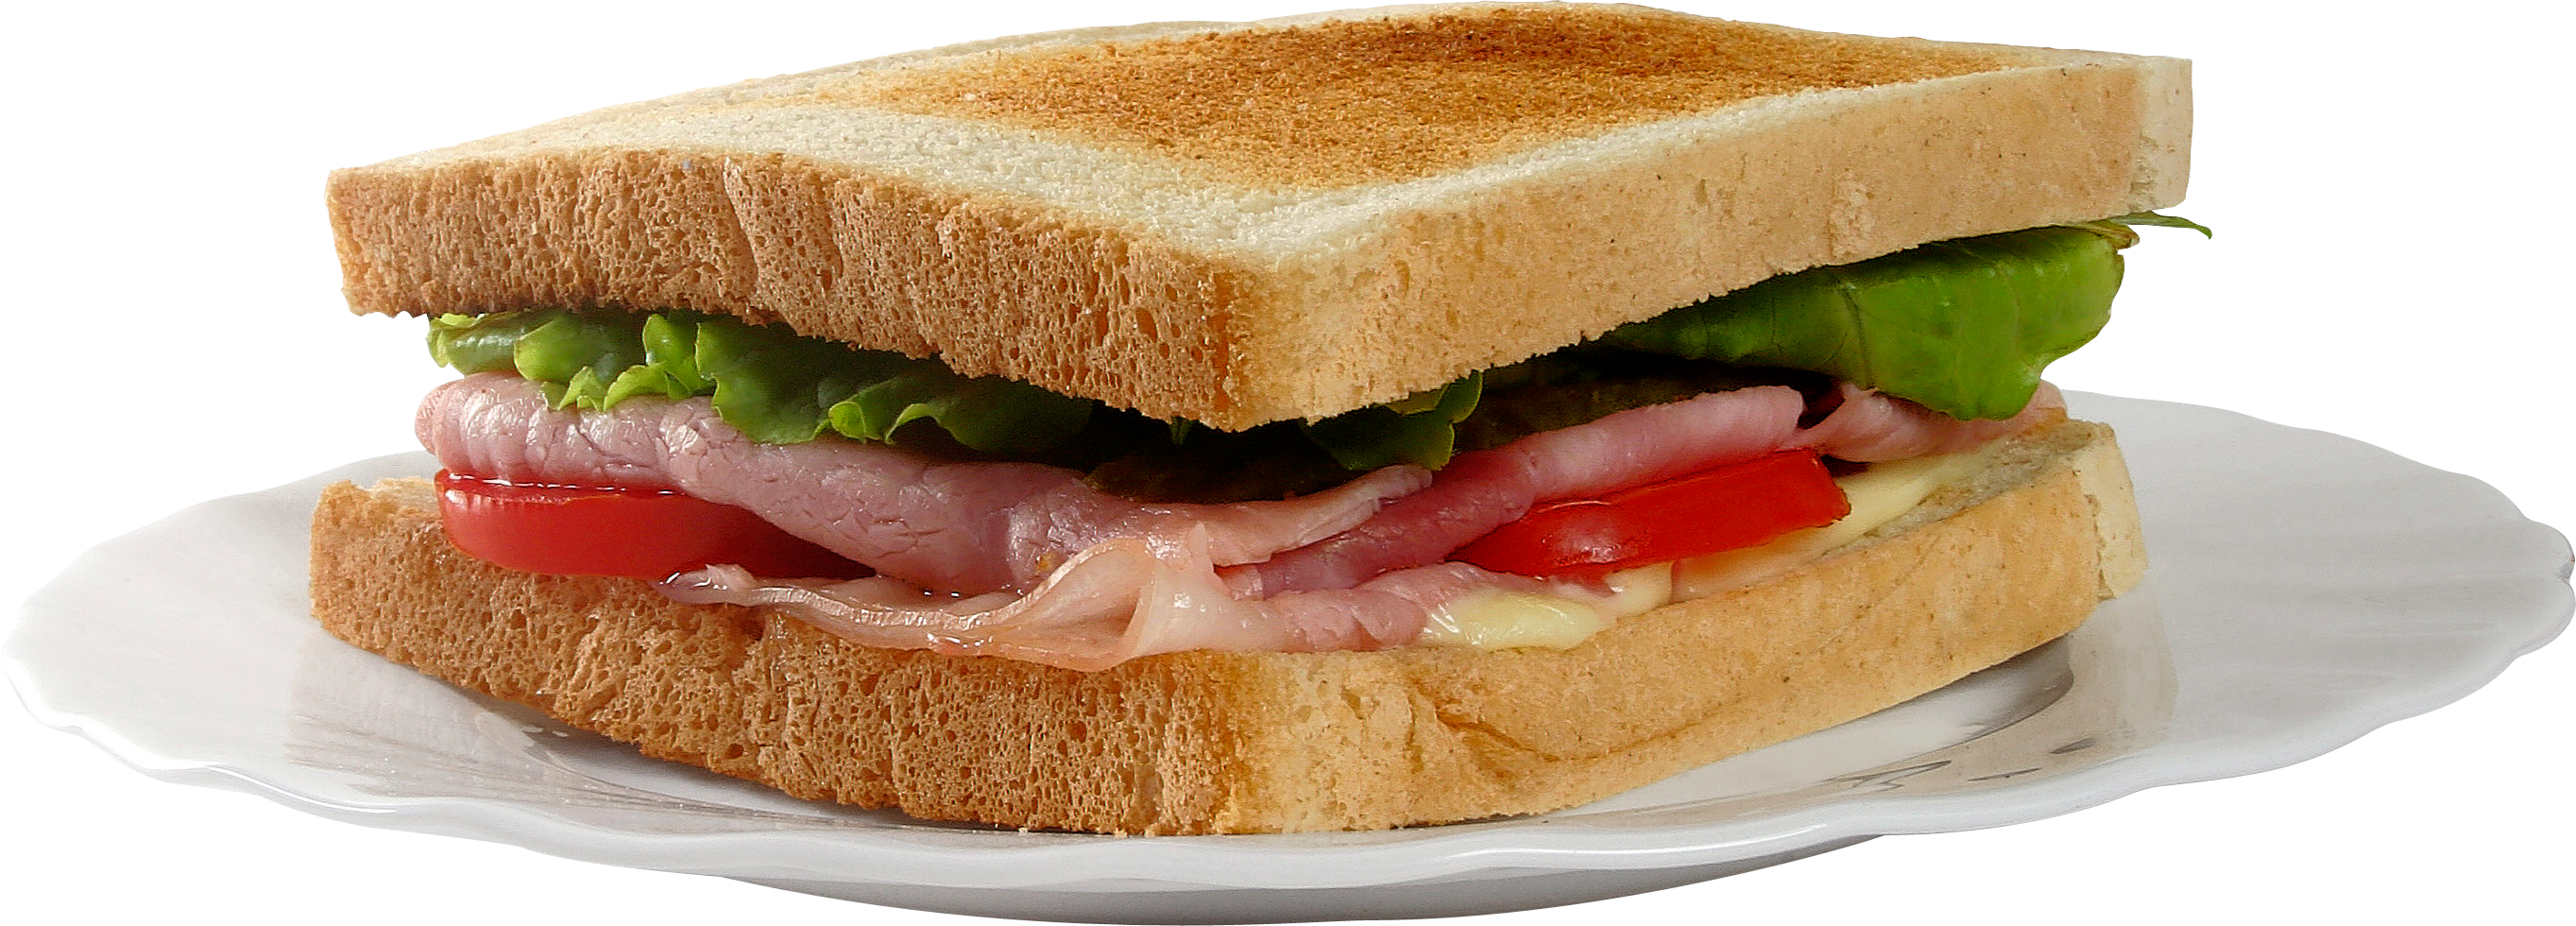 download png image sandwich png image food food cravings gourmet sandwiches download png image sandwich png image